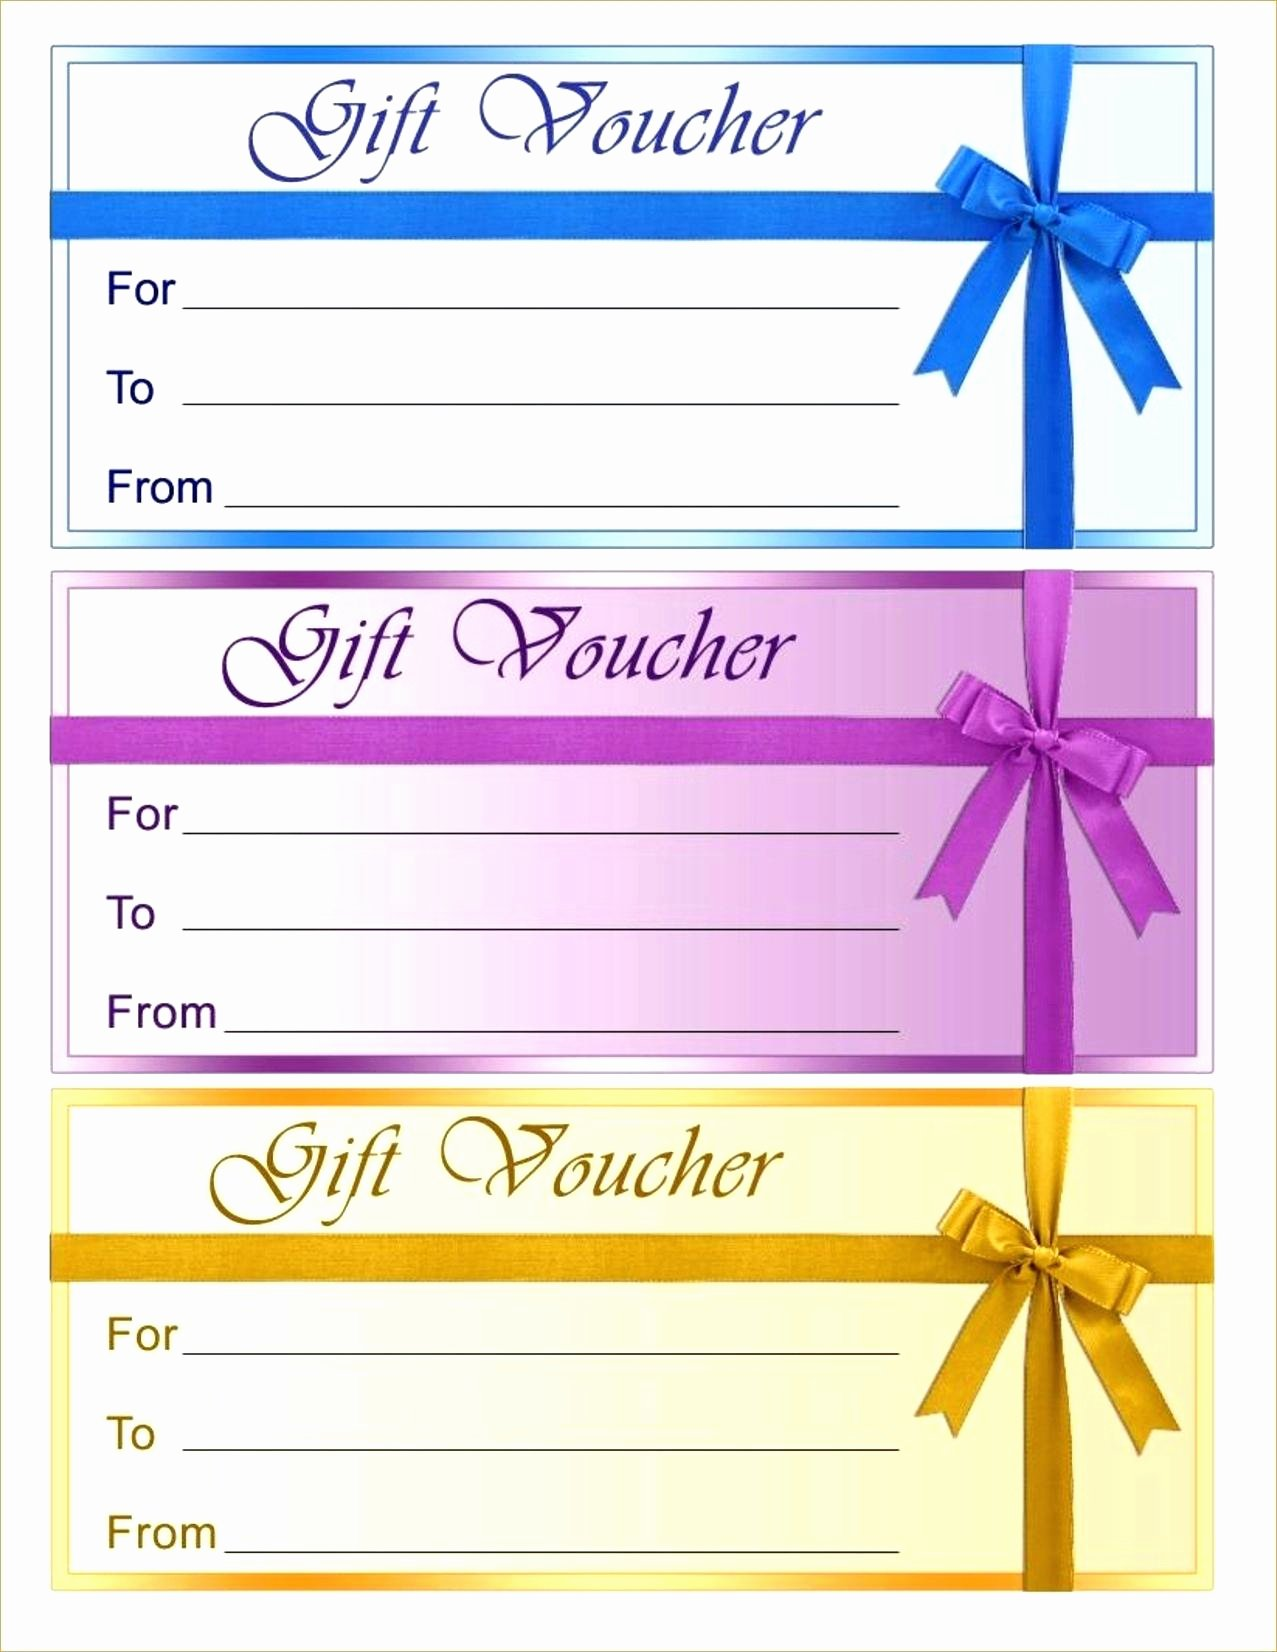 Car Wash Gift Certificate Template Best Of Car Gift Certificate Template Car Detailing Price List